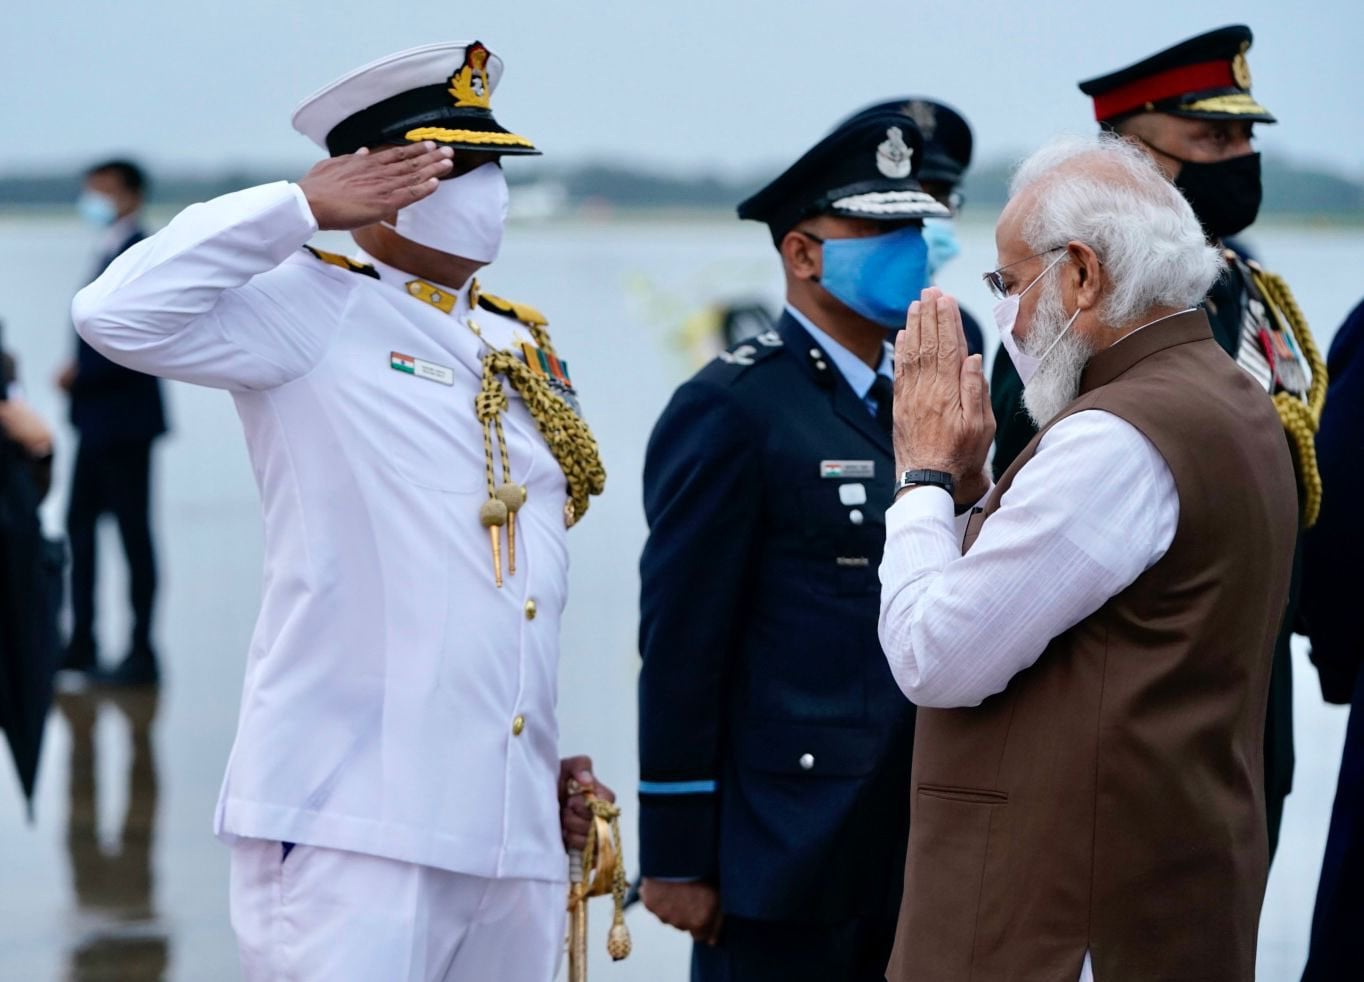 PM Modi being received by officials at Washington airport.(Twitter/@narendramodi)